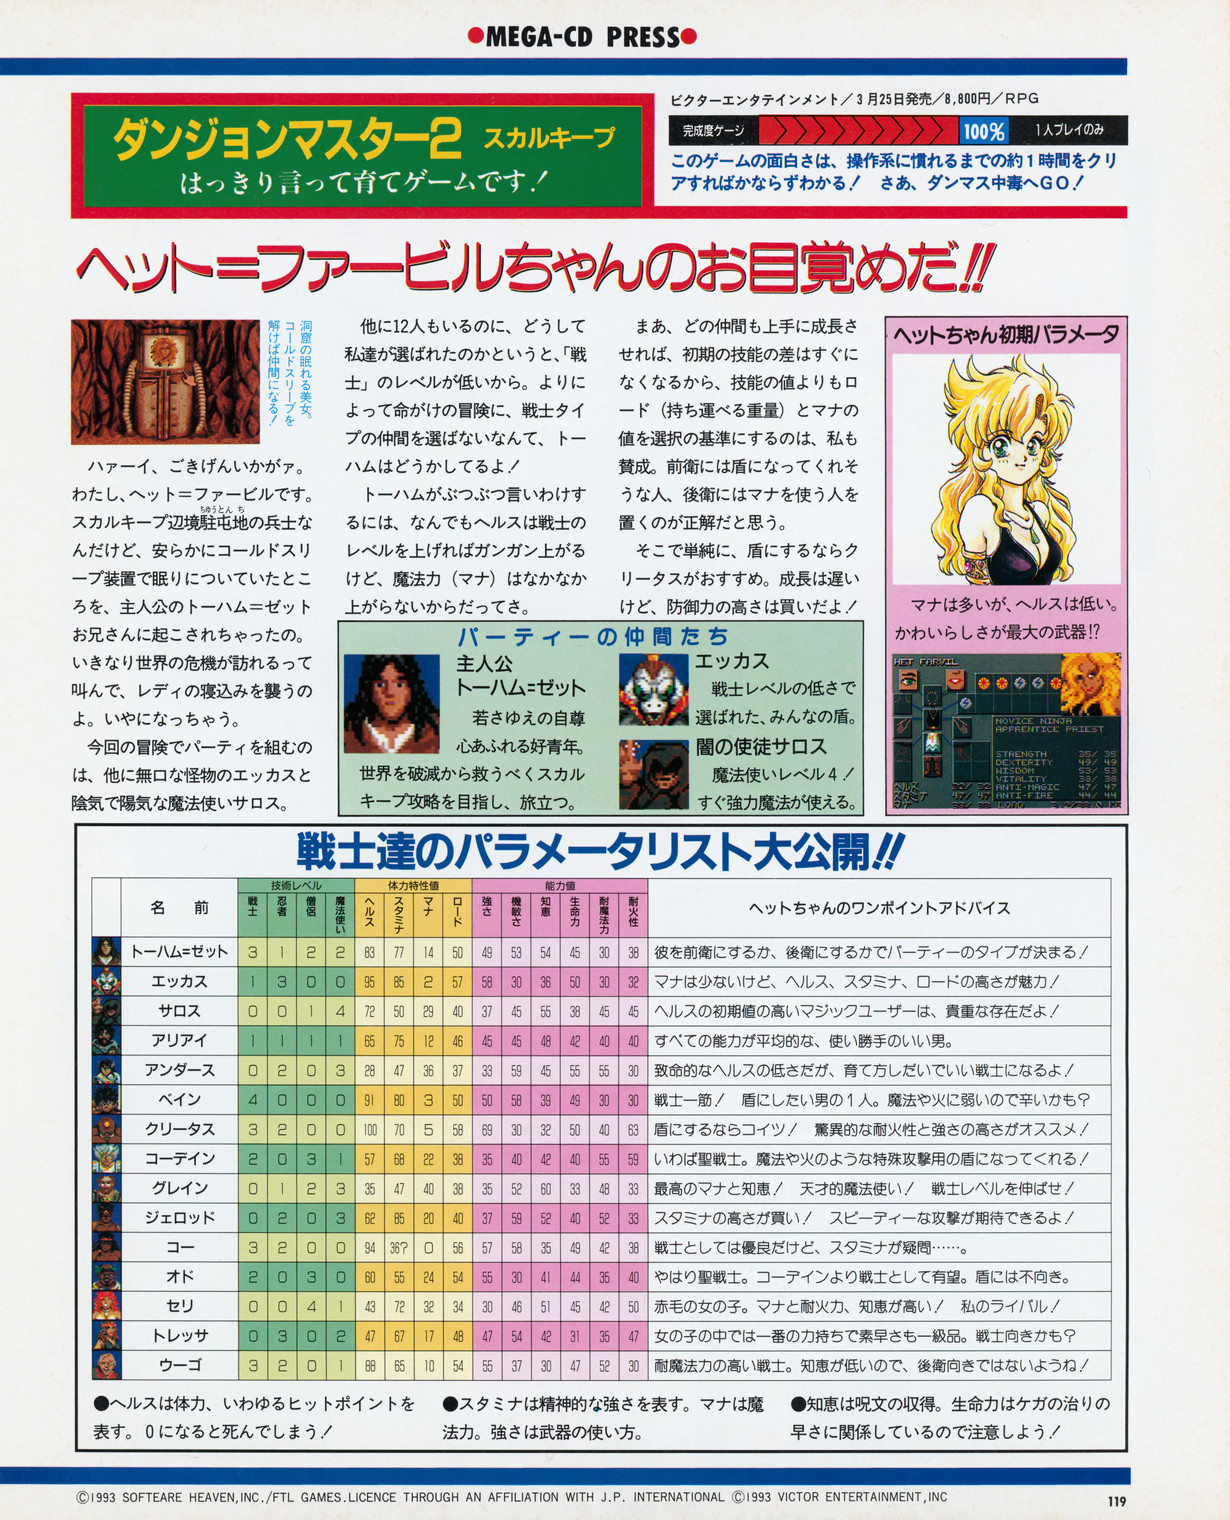 Dungeon Master II for Mega CD Hints published in Japanese magazine 'Beep! MegaDrive', April 1994, Page 119